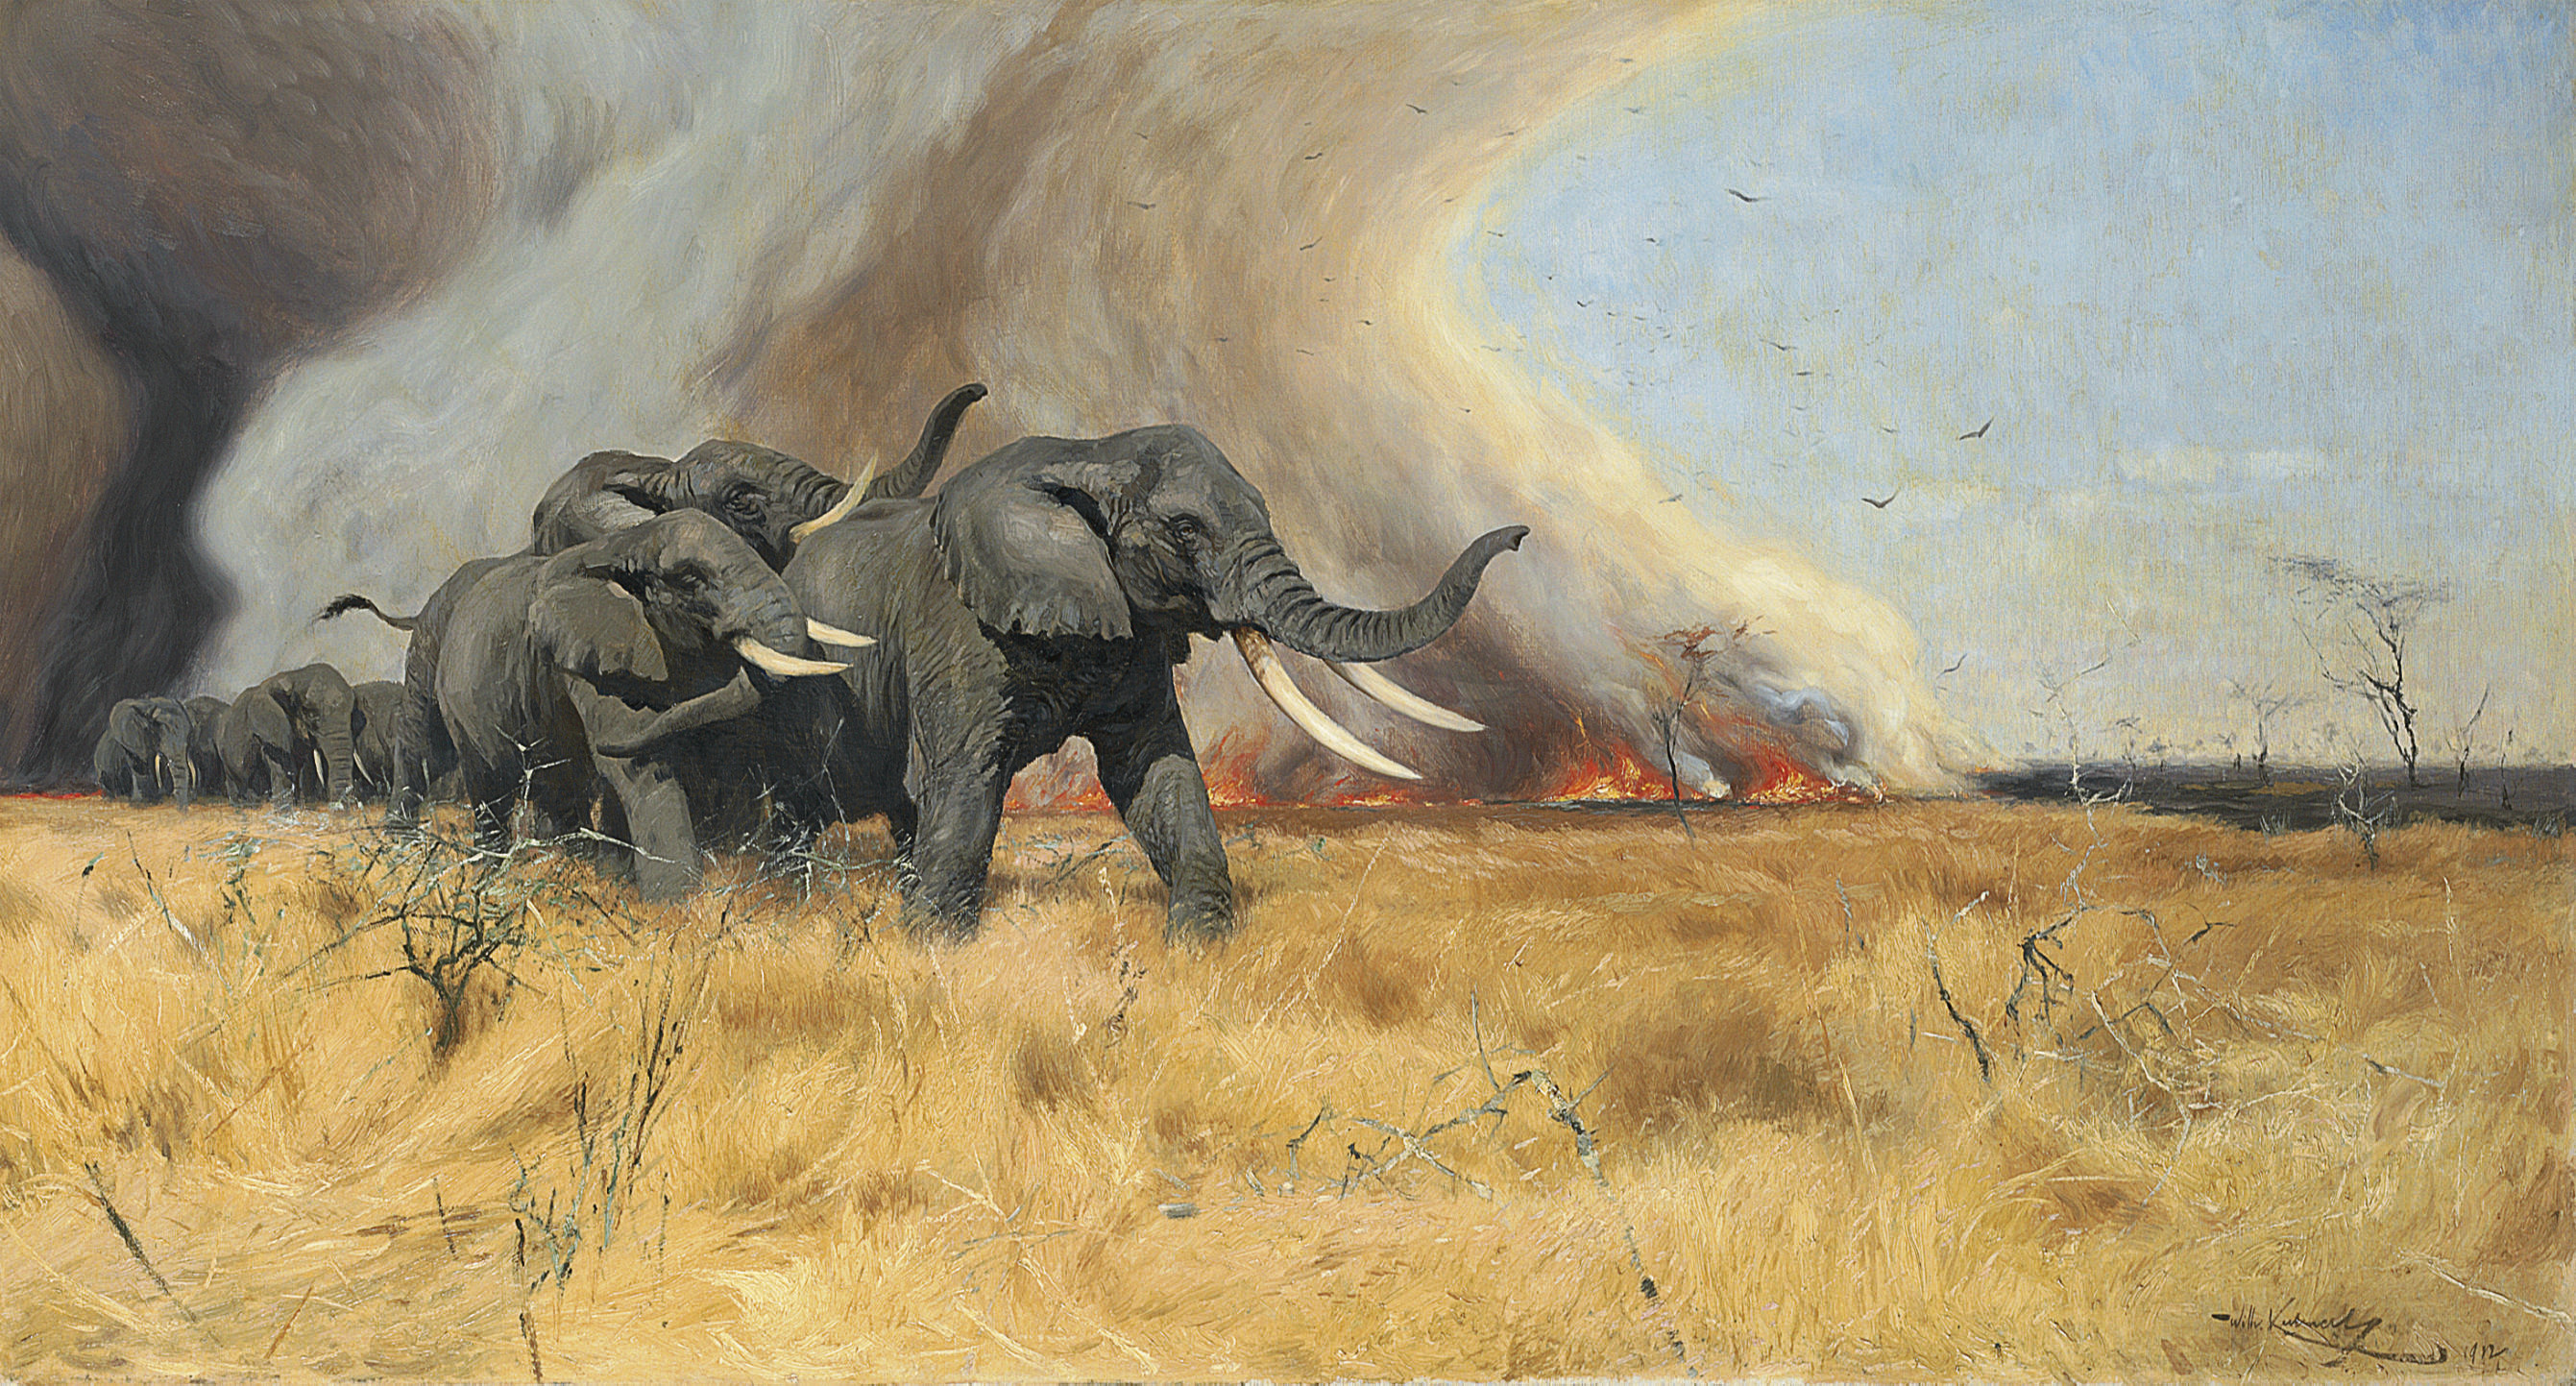 A herd of elephants fleeing from a bush fire